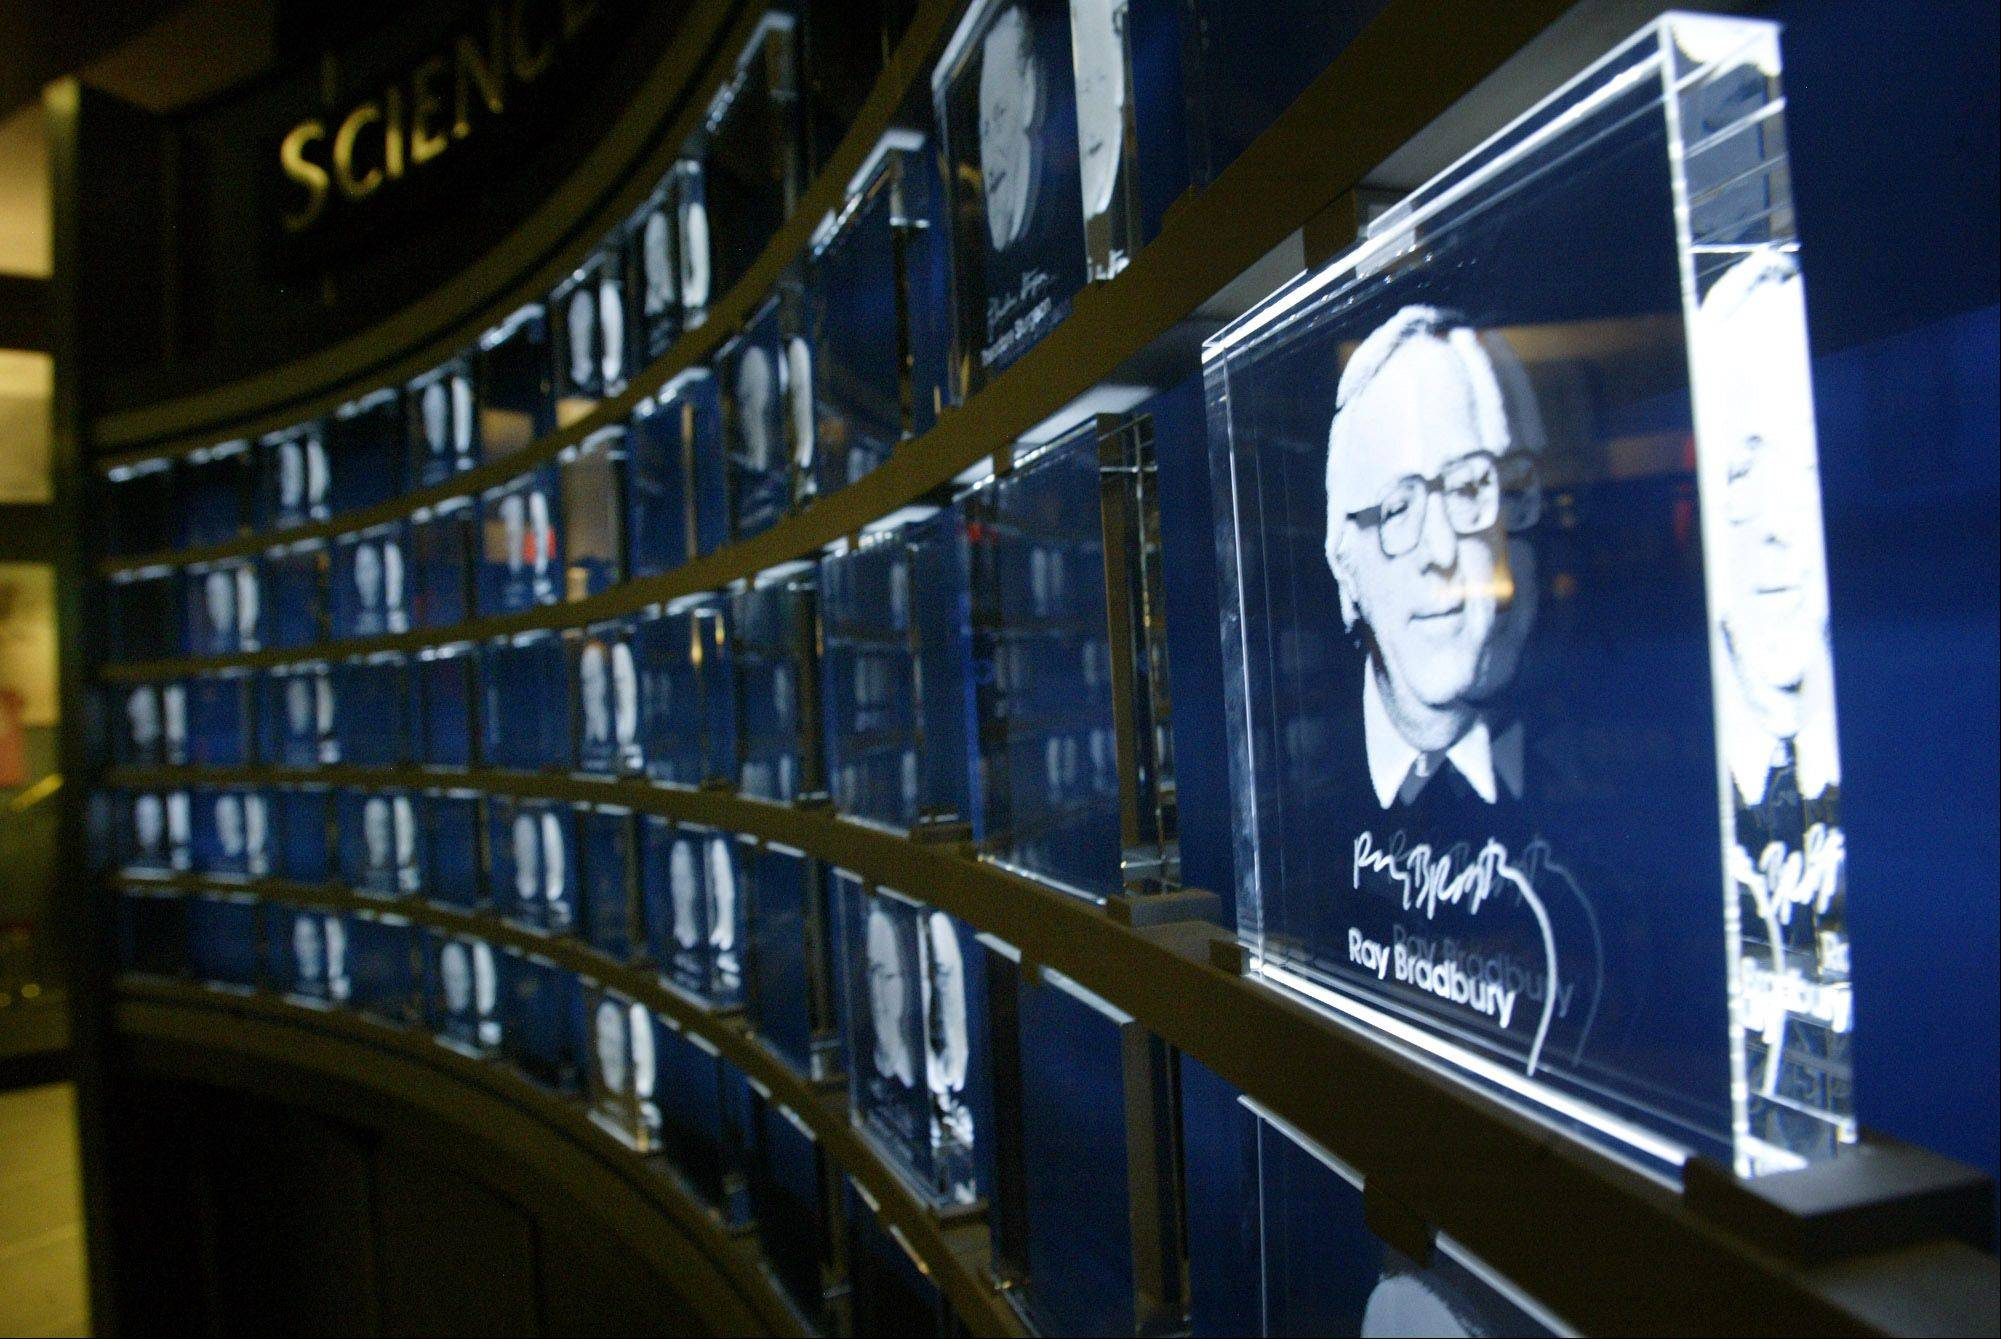 An image of science fiction author Ray Bradbury etched in glass sits on display in the Science Fiction Museum and Hall of Fame, Tuesday, June 8, 2004, in Seattle. The museum, created with $20 million from Microsoft co-founder Paul Allen, opens June 18.